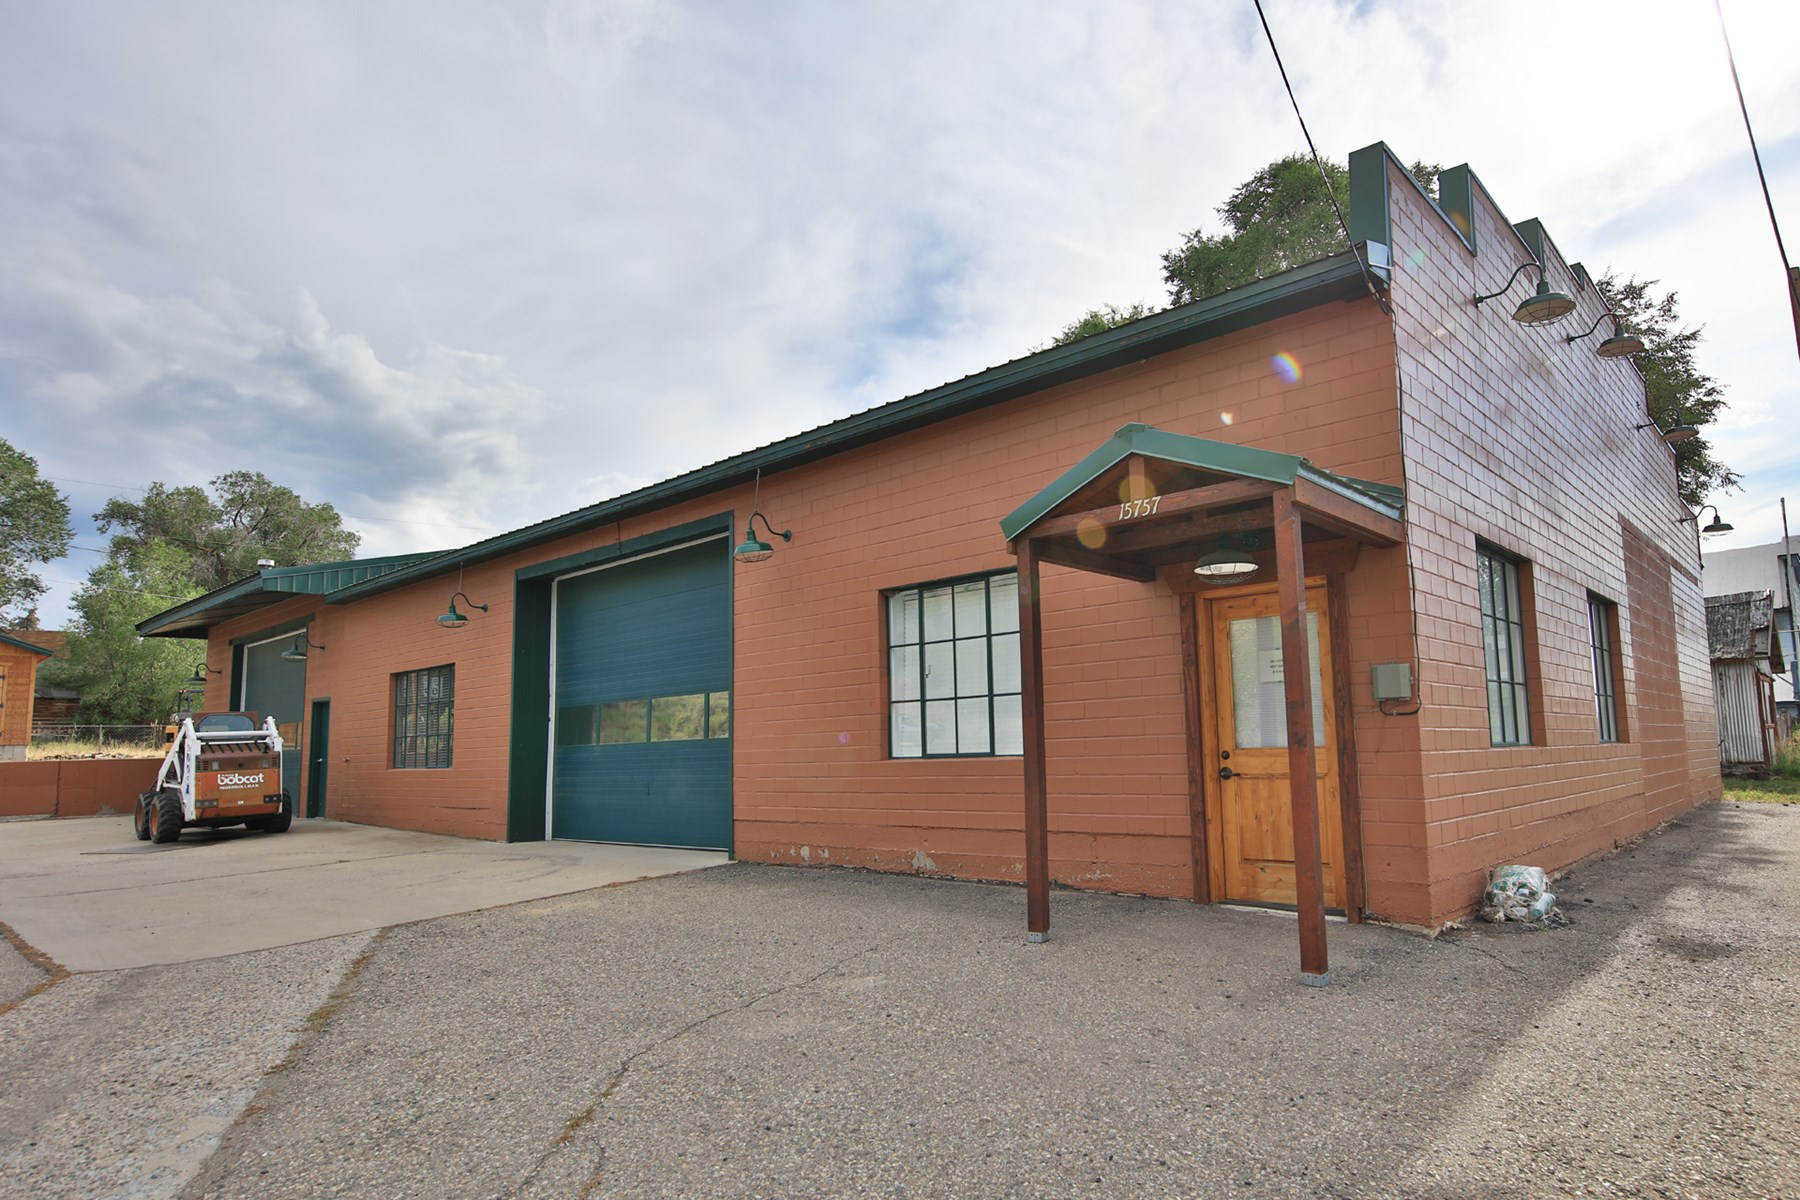 Commercial Shop/Warehouse For Sale in Colorado